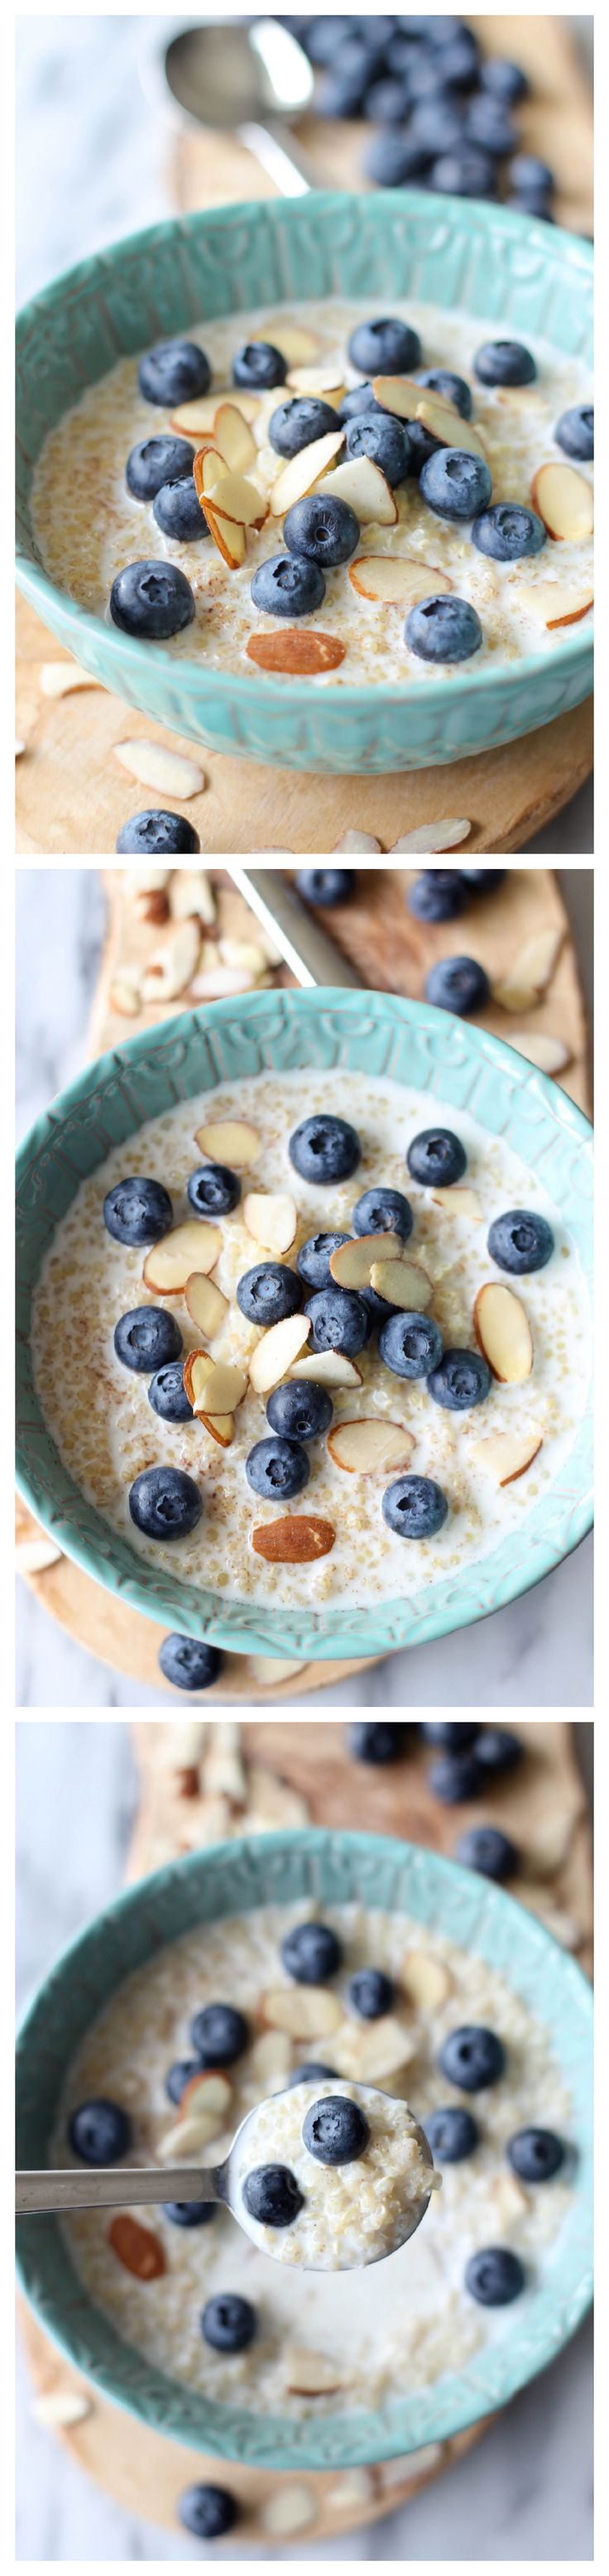 Blueberry Breakfast Quinoa - Start your day off right with this healthy, protein-packed breakfast bowl!